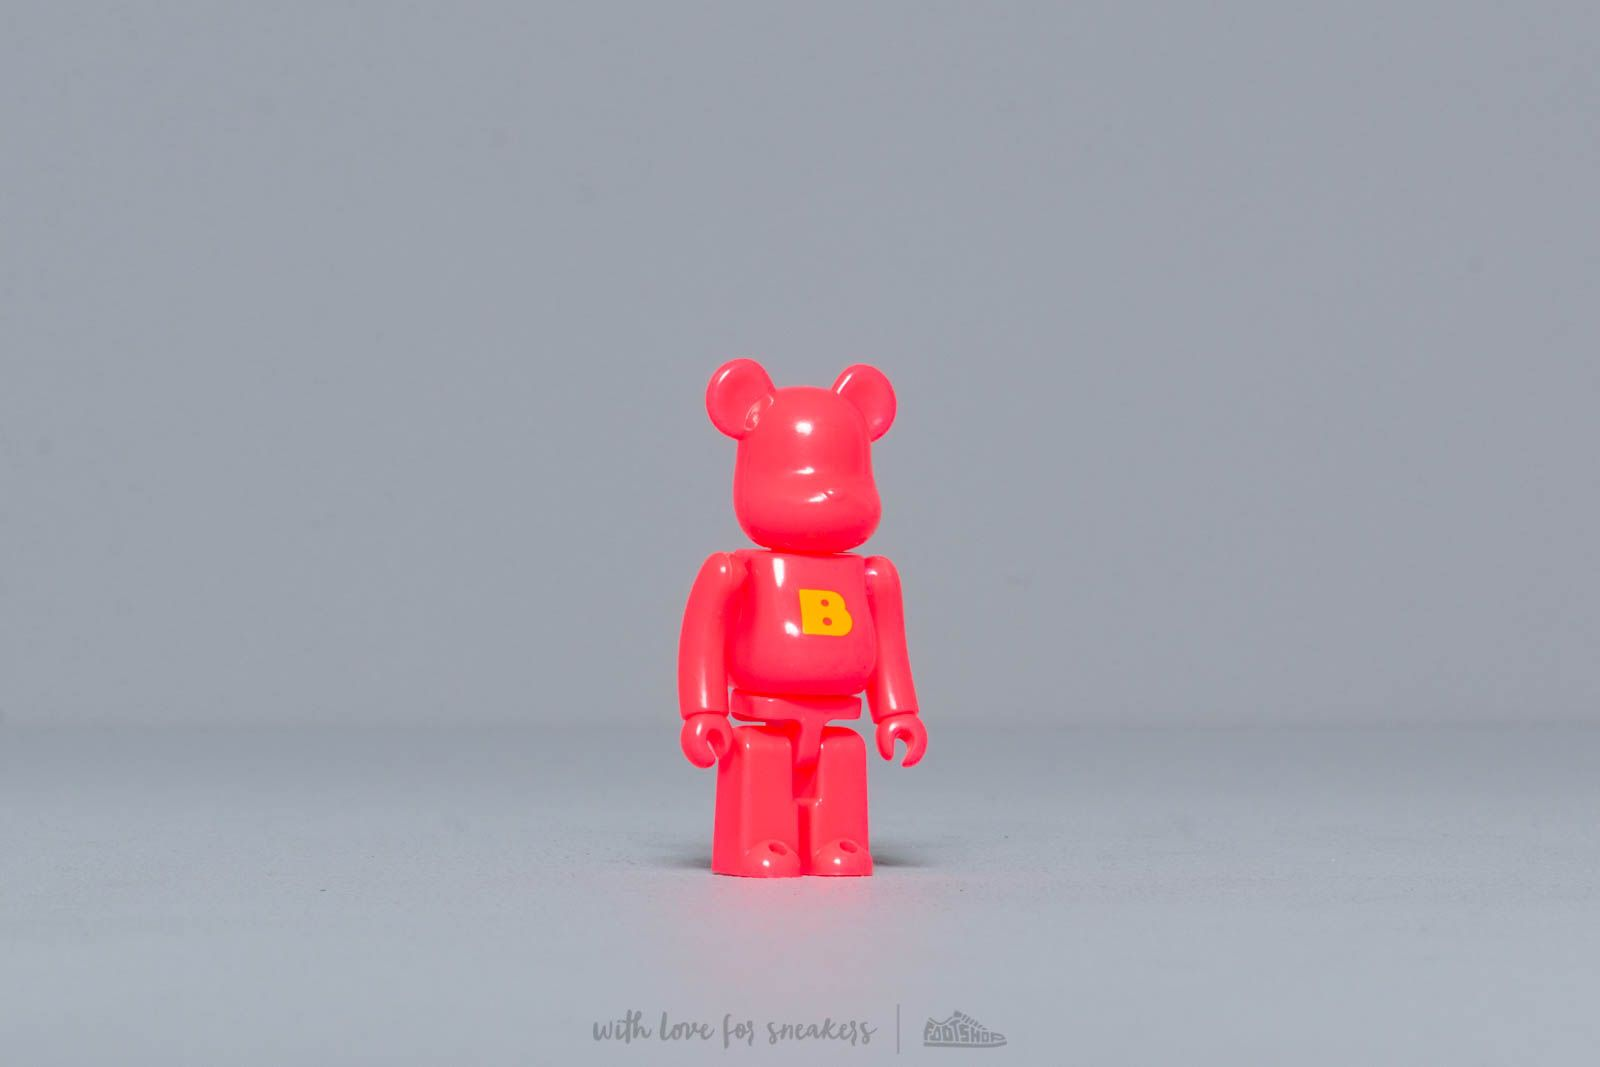 Medicom Toy Be@rbrick Series 37